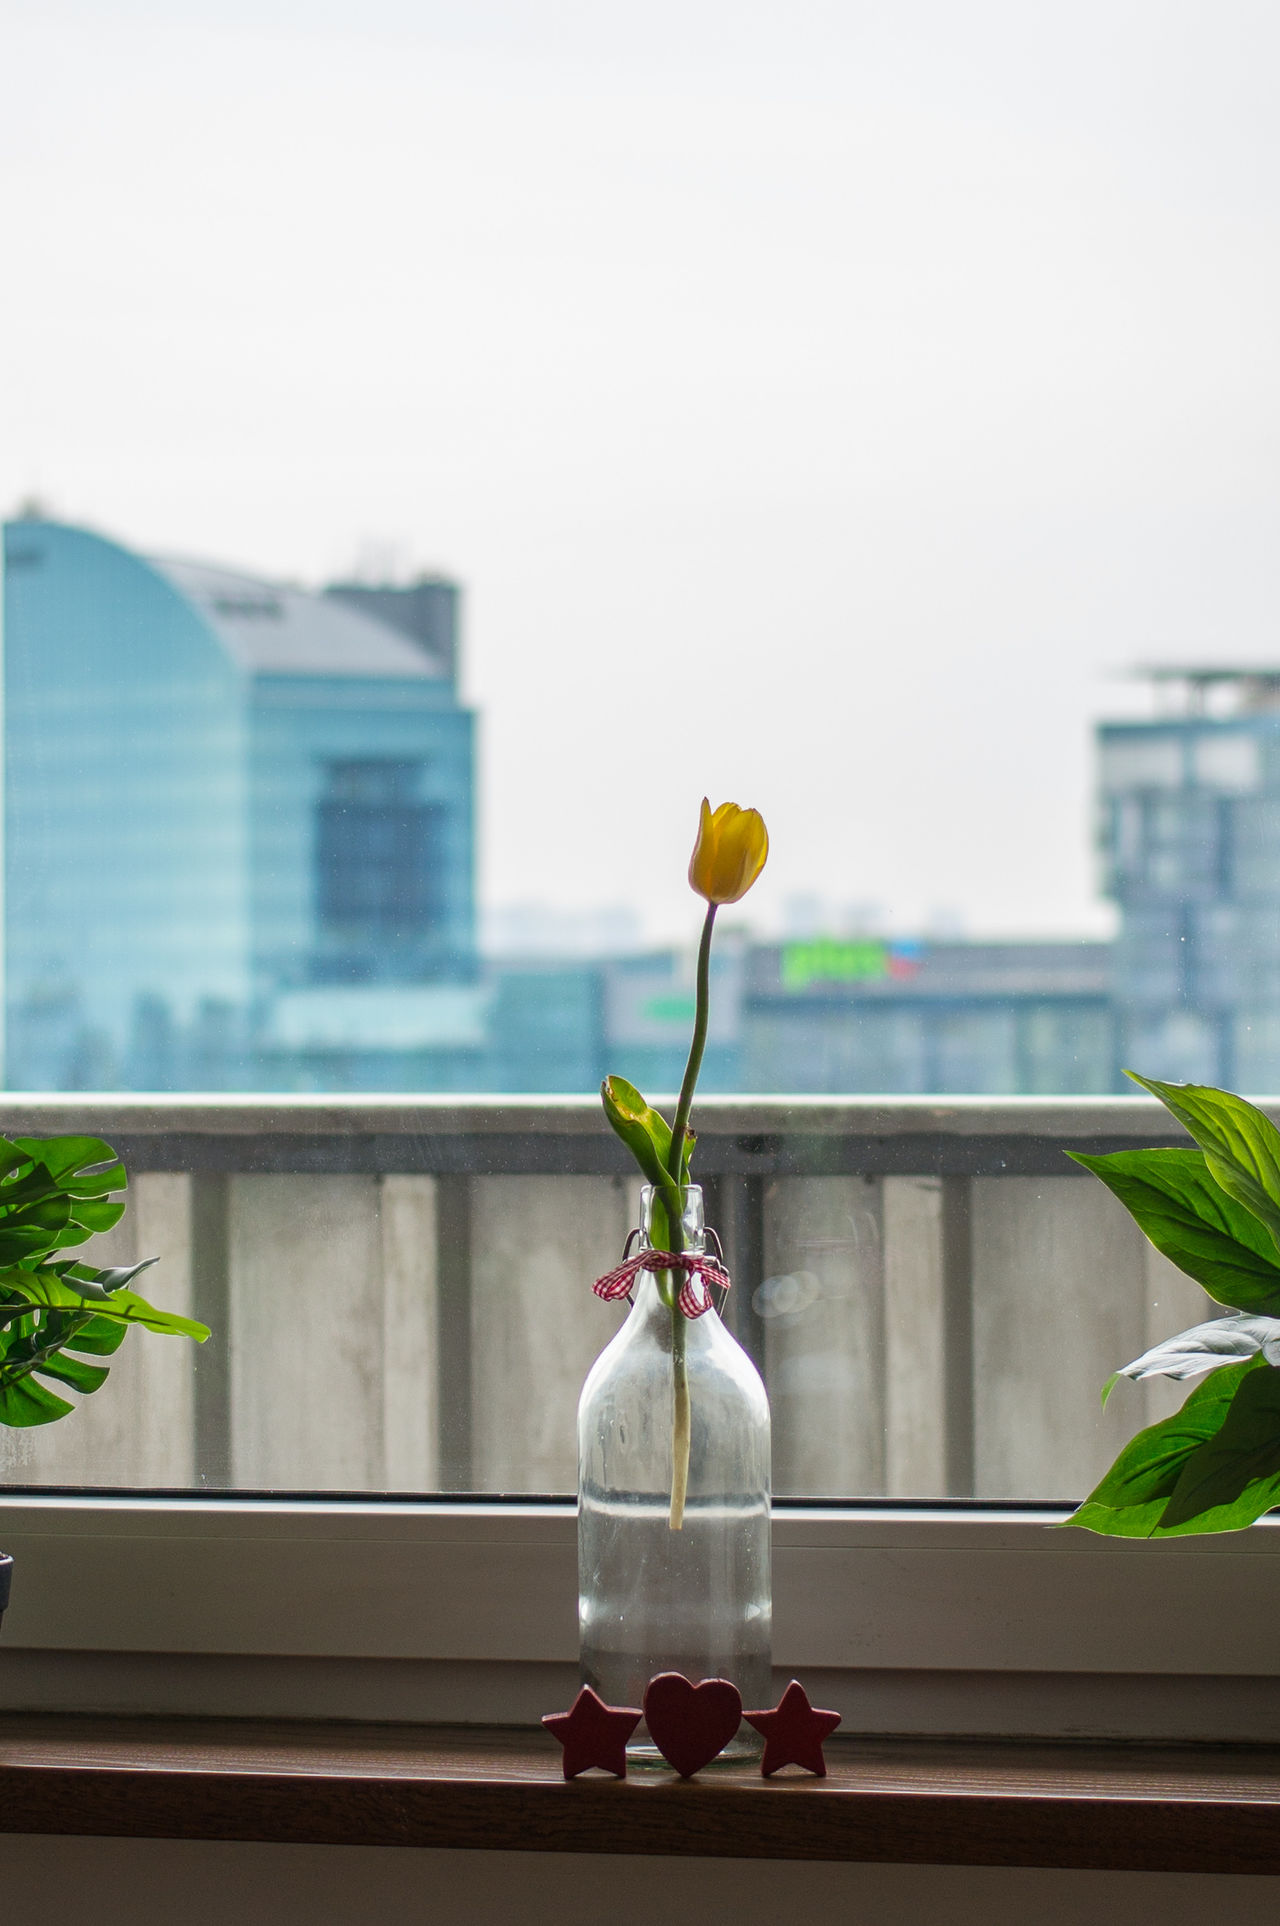 Day 81. work related. 365 Architecture Beauty In Nature Building Exterior Built Structure Close-up Day Flower Flower Head Focus On Foreground Fragility Freshness Growth Hanging Leaf Nature No People Outdoors Plant Rose - Flower Sky Vase Window Window Sill